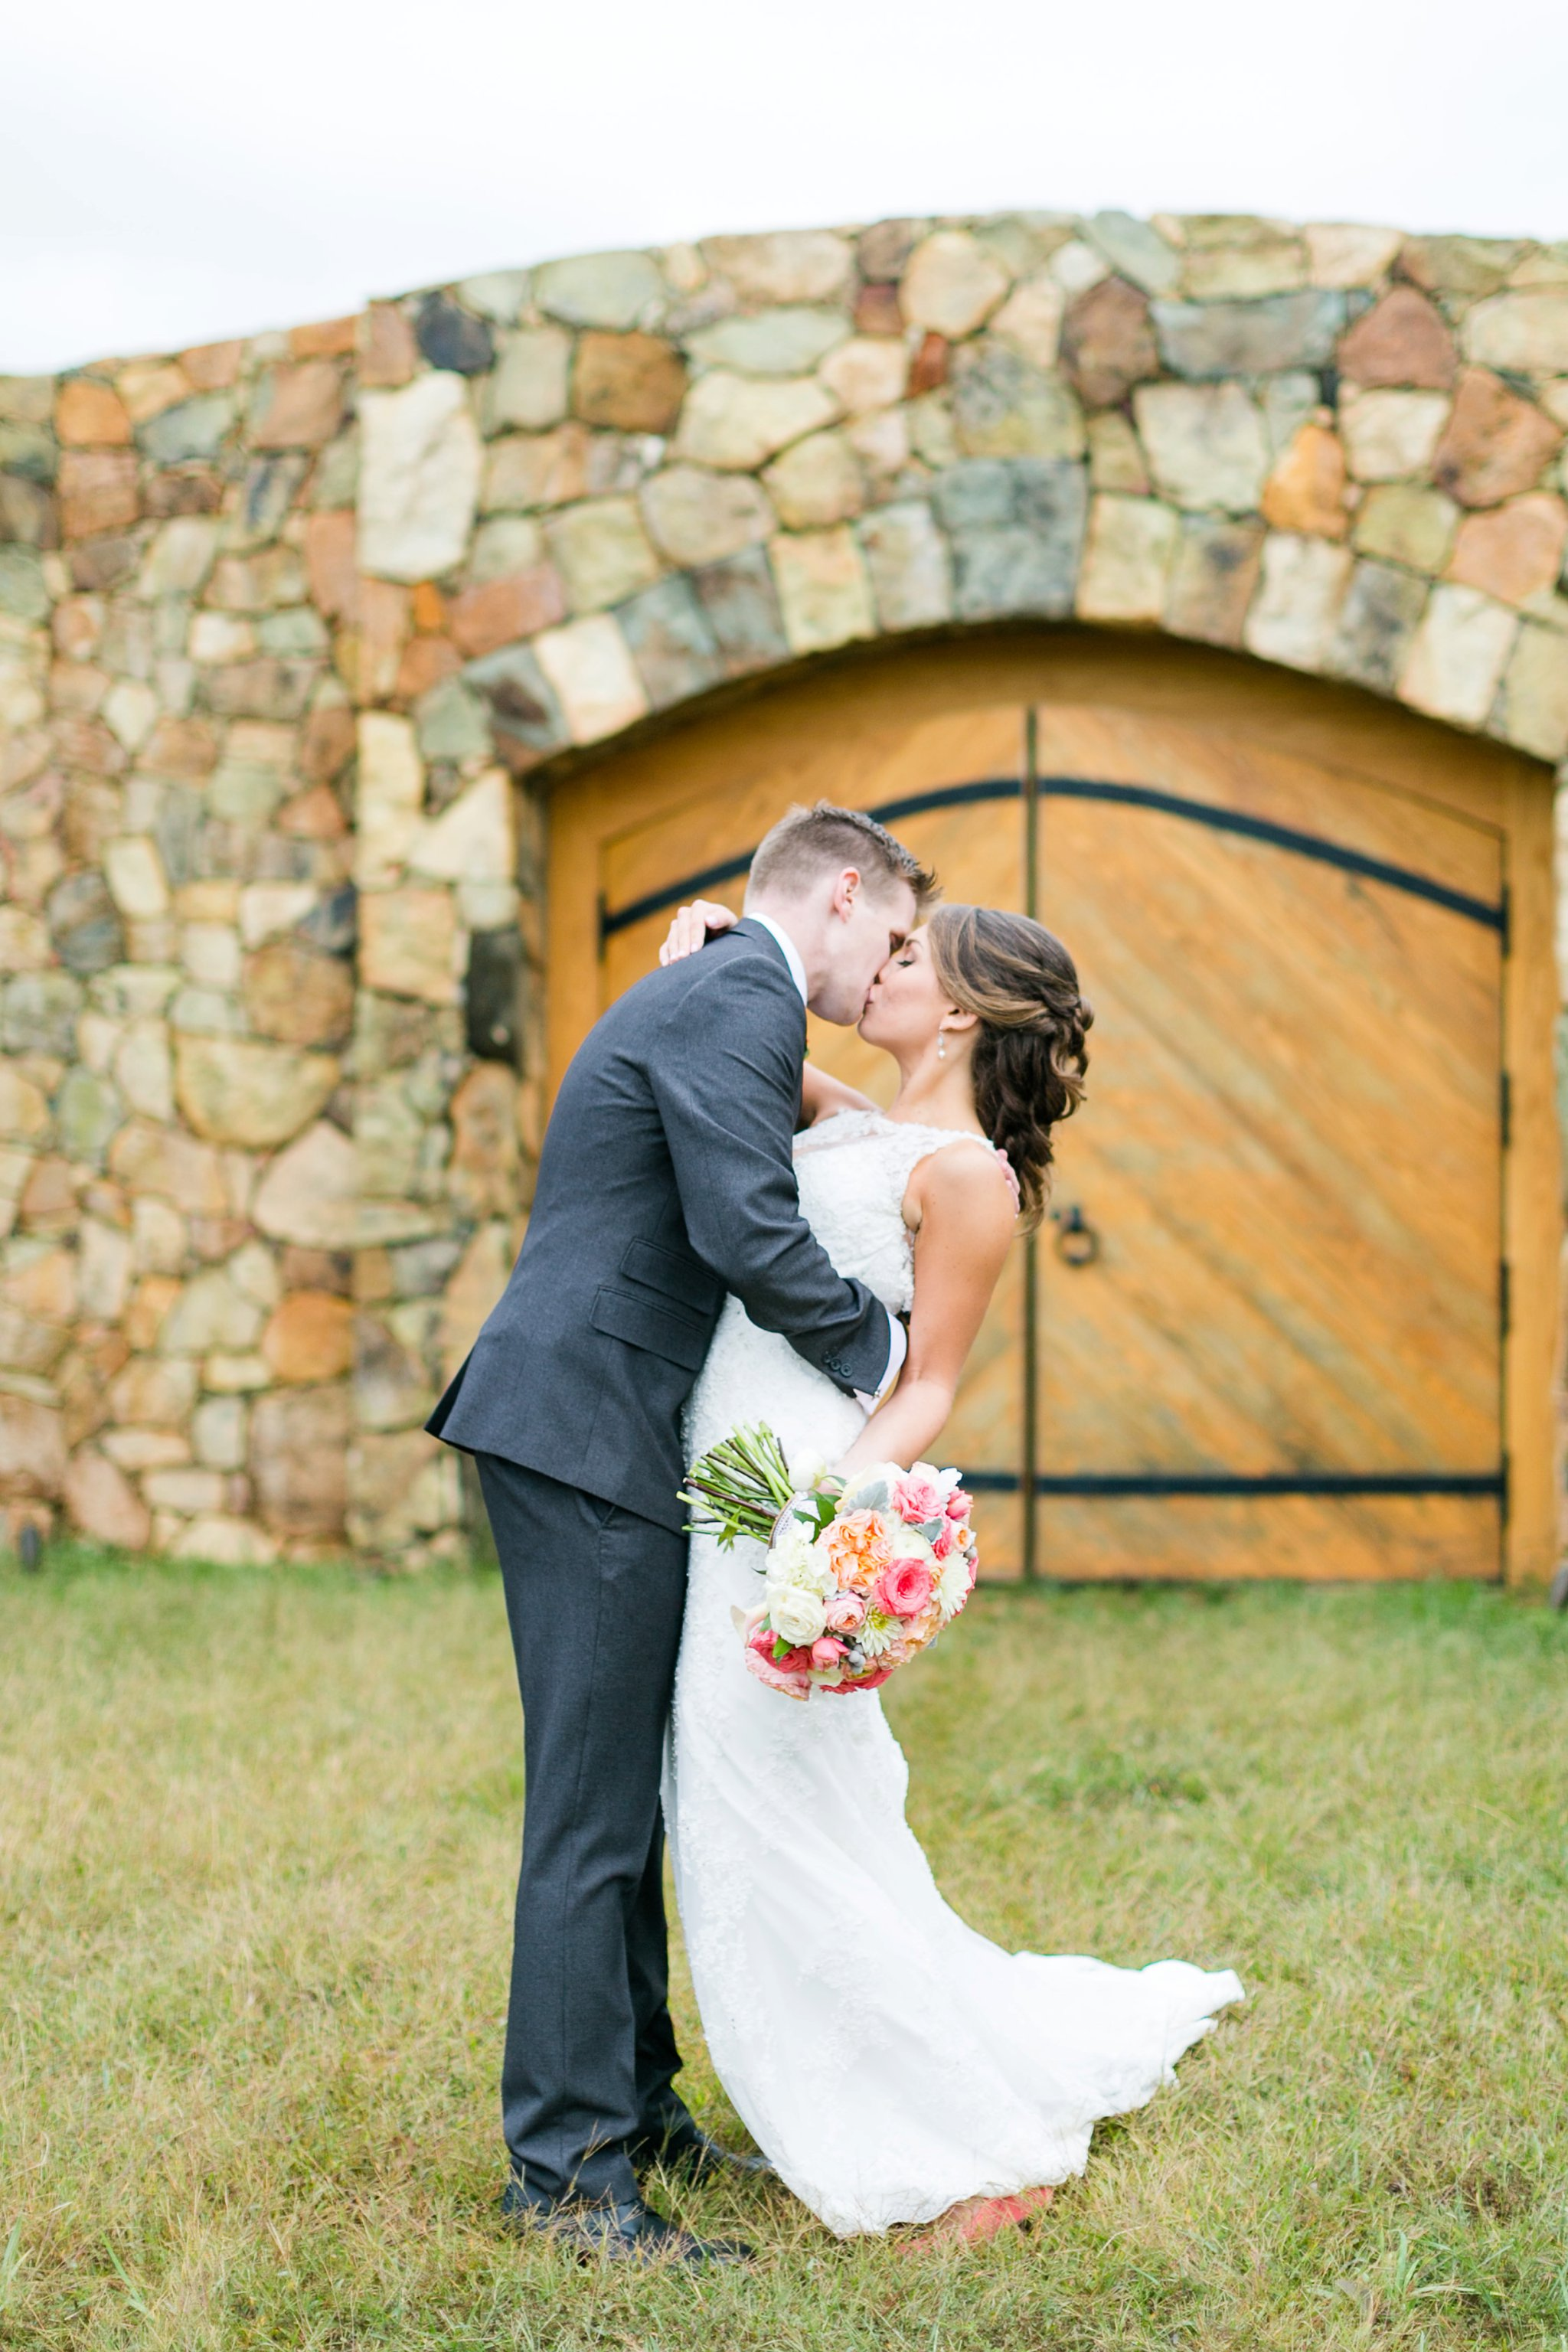 Stone Tower Winery Wedding Photos Virginia Wedding Photographer Megan Kelsey Photography Sam & Angela-259.jpg